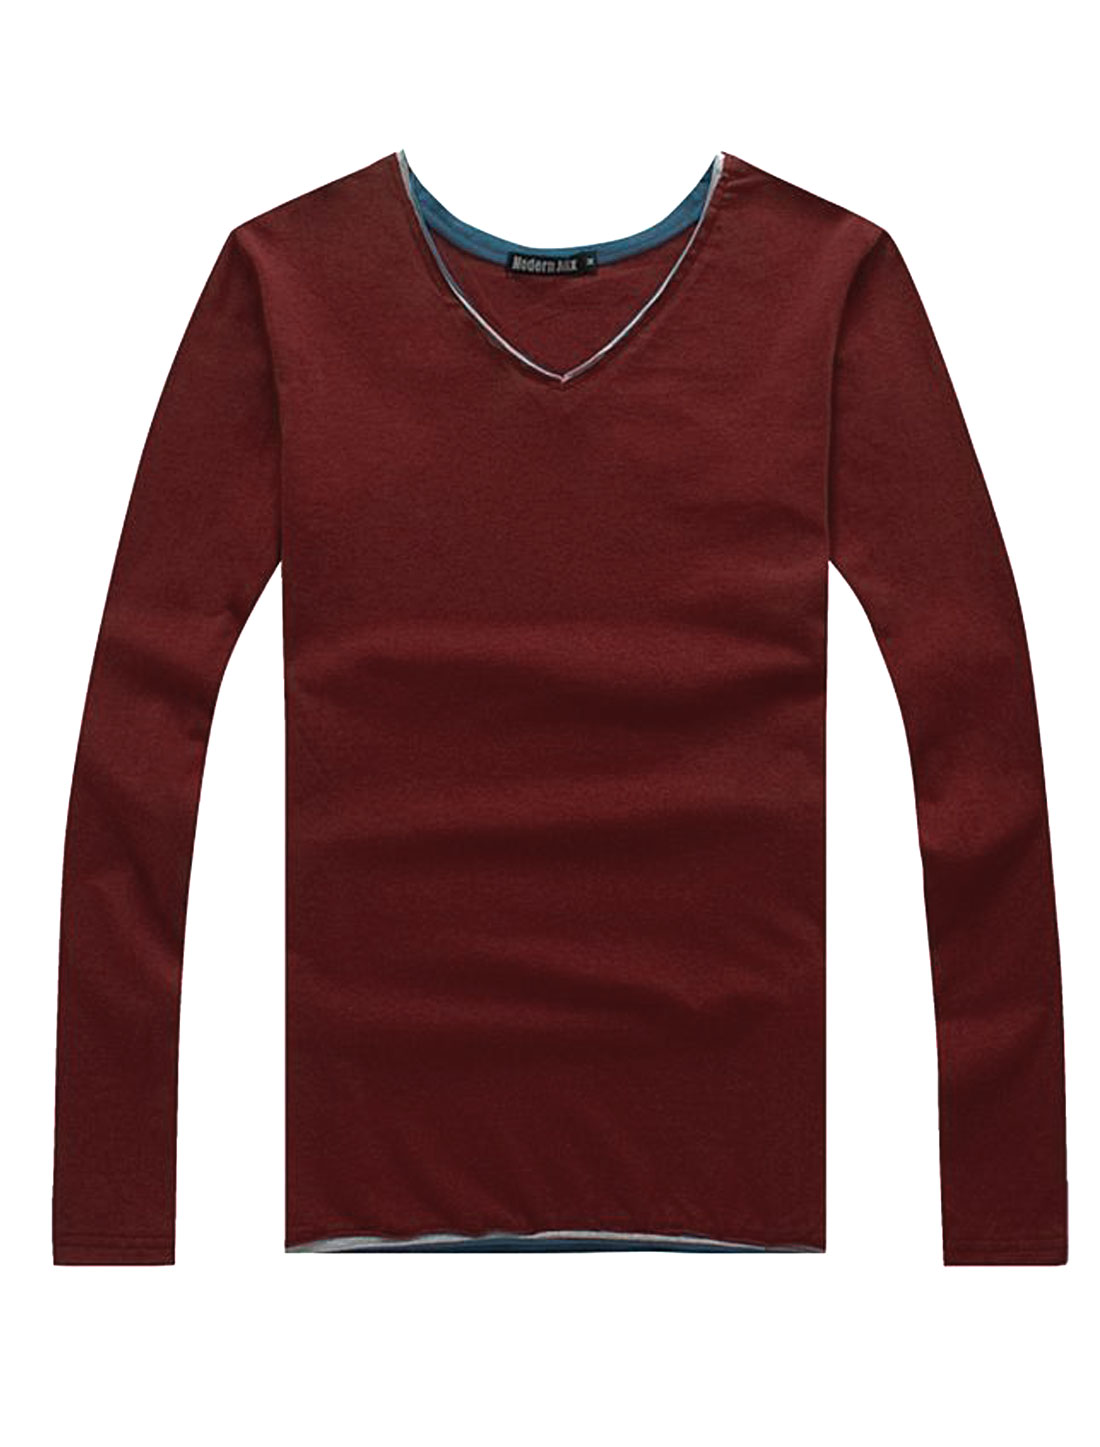 Soft Patched Detail Slipover Design Casual Shirt for Men Burgundy M